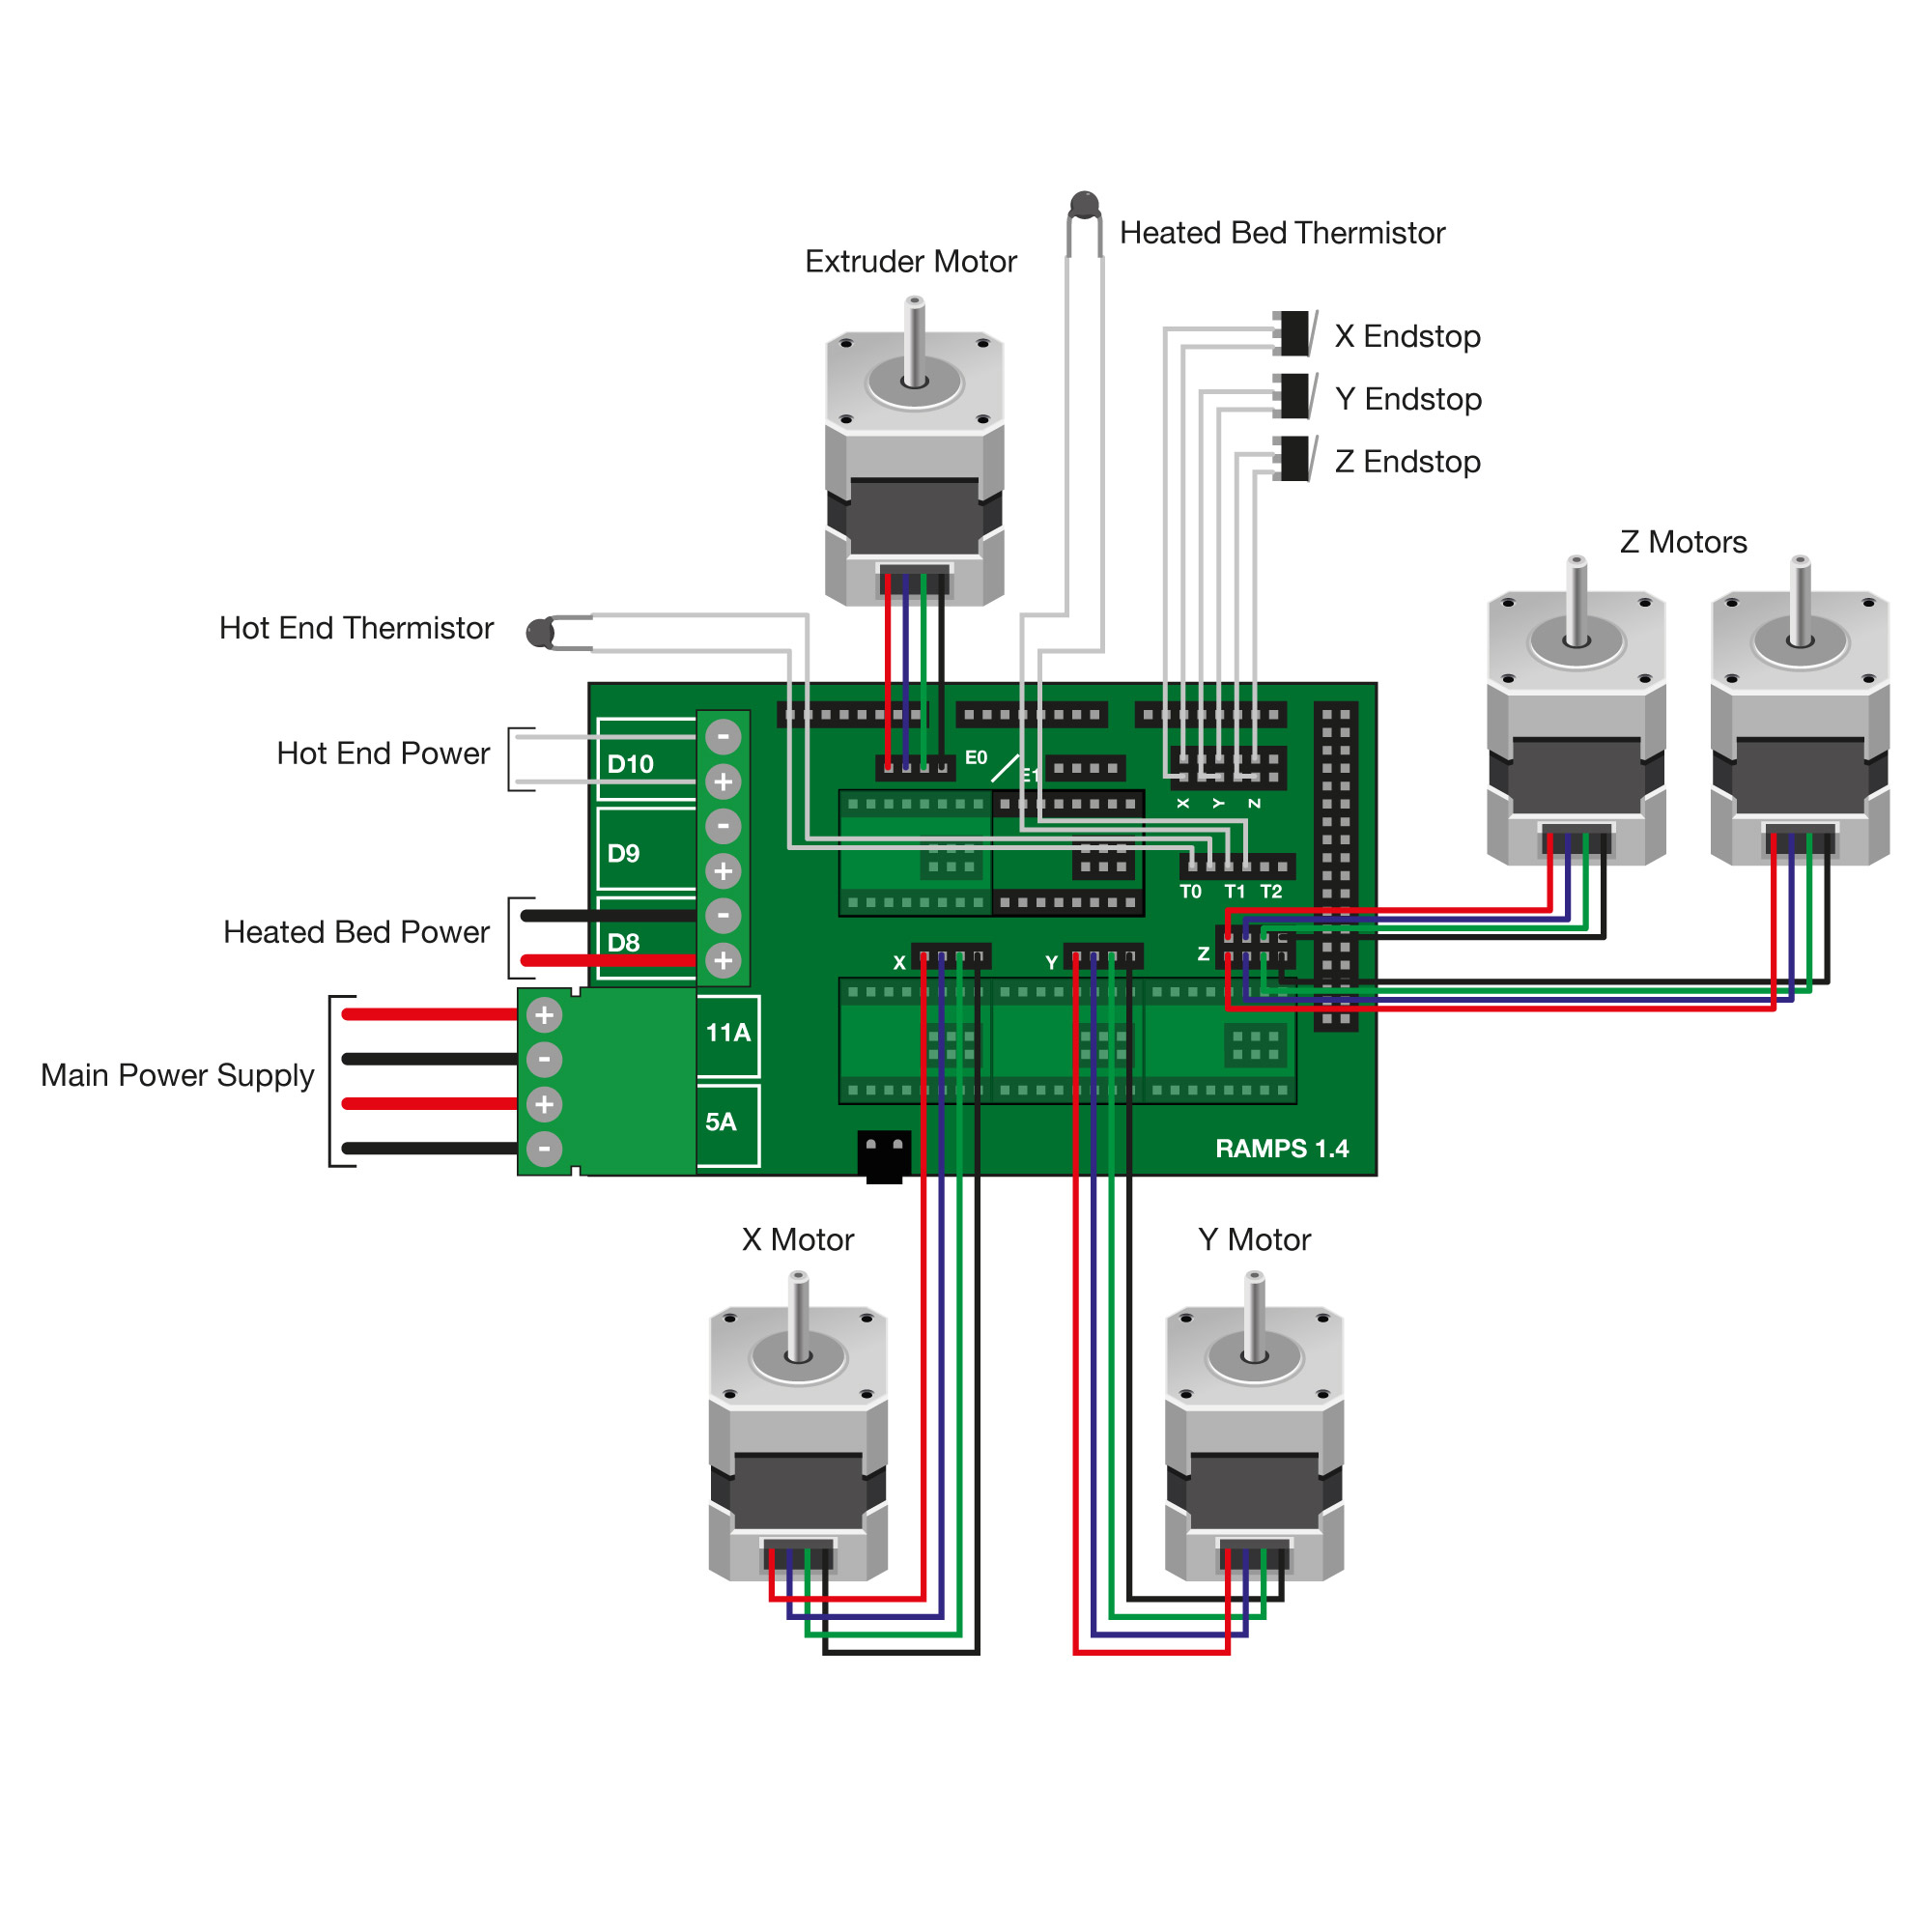 15470352354_3baf2e7bba_o reprap wiring diagram nema 17 wiring diagram \u2022 wiring diagrams j  at gsmx.co